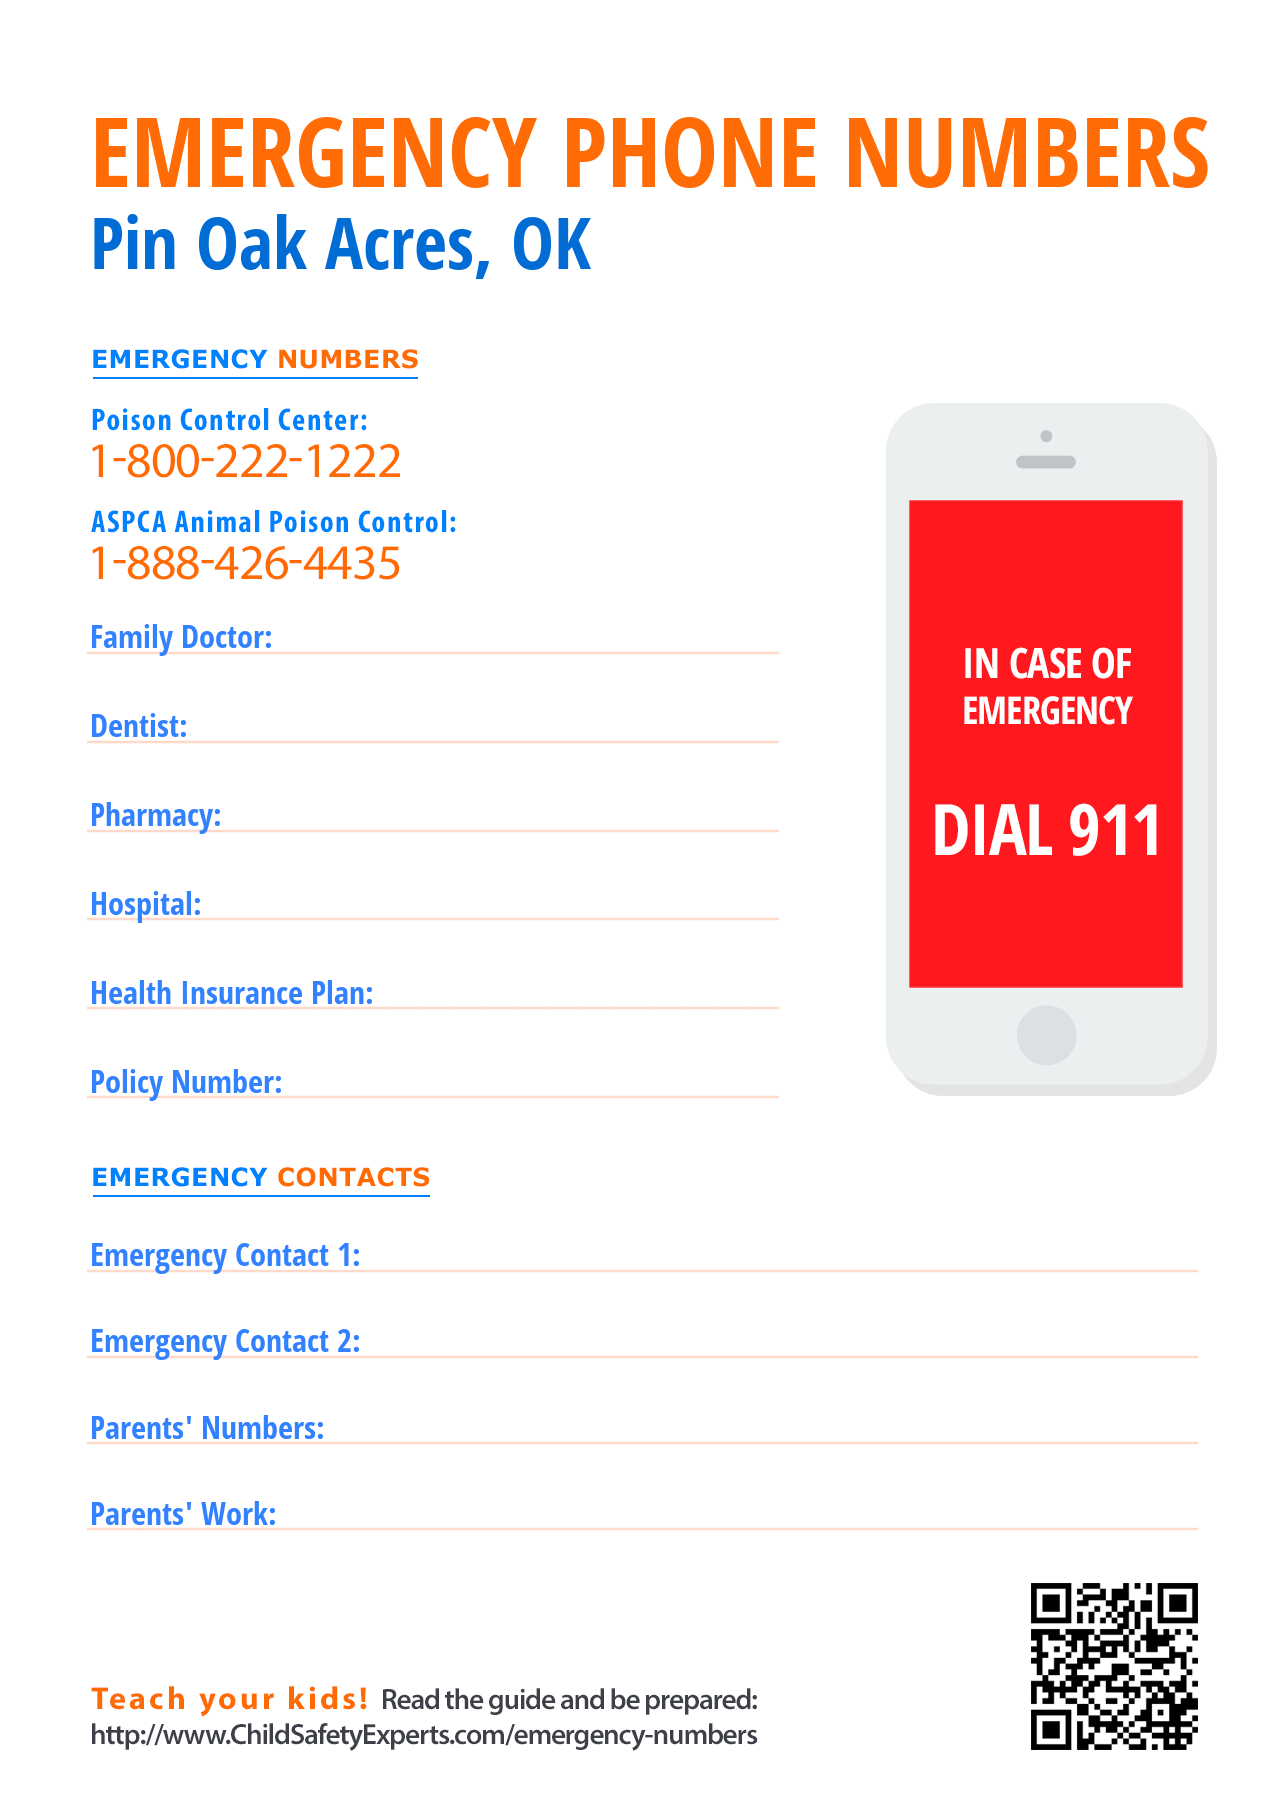 Important emergency phone numbers in Pin Oak Acres, Oklahoma